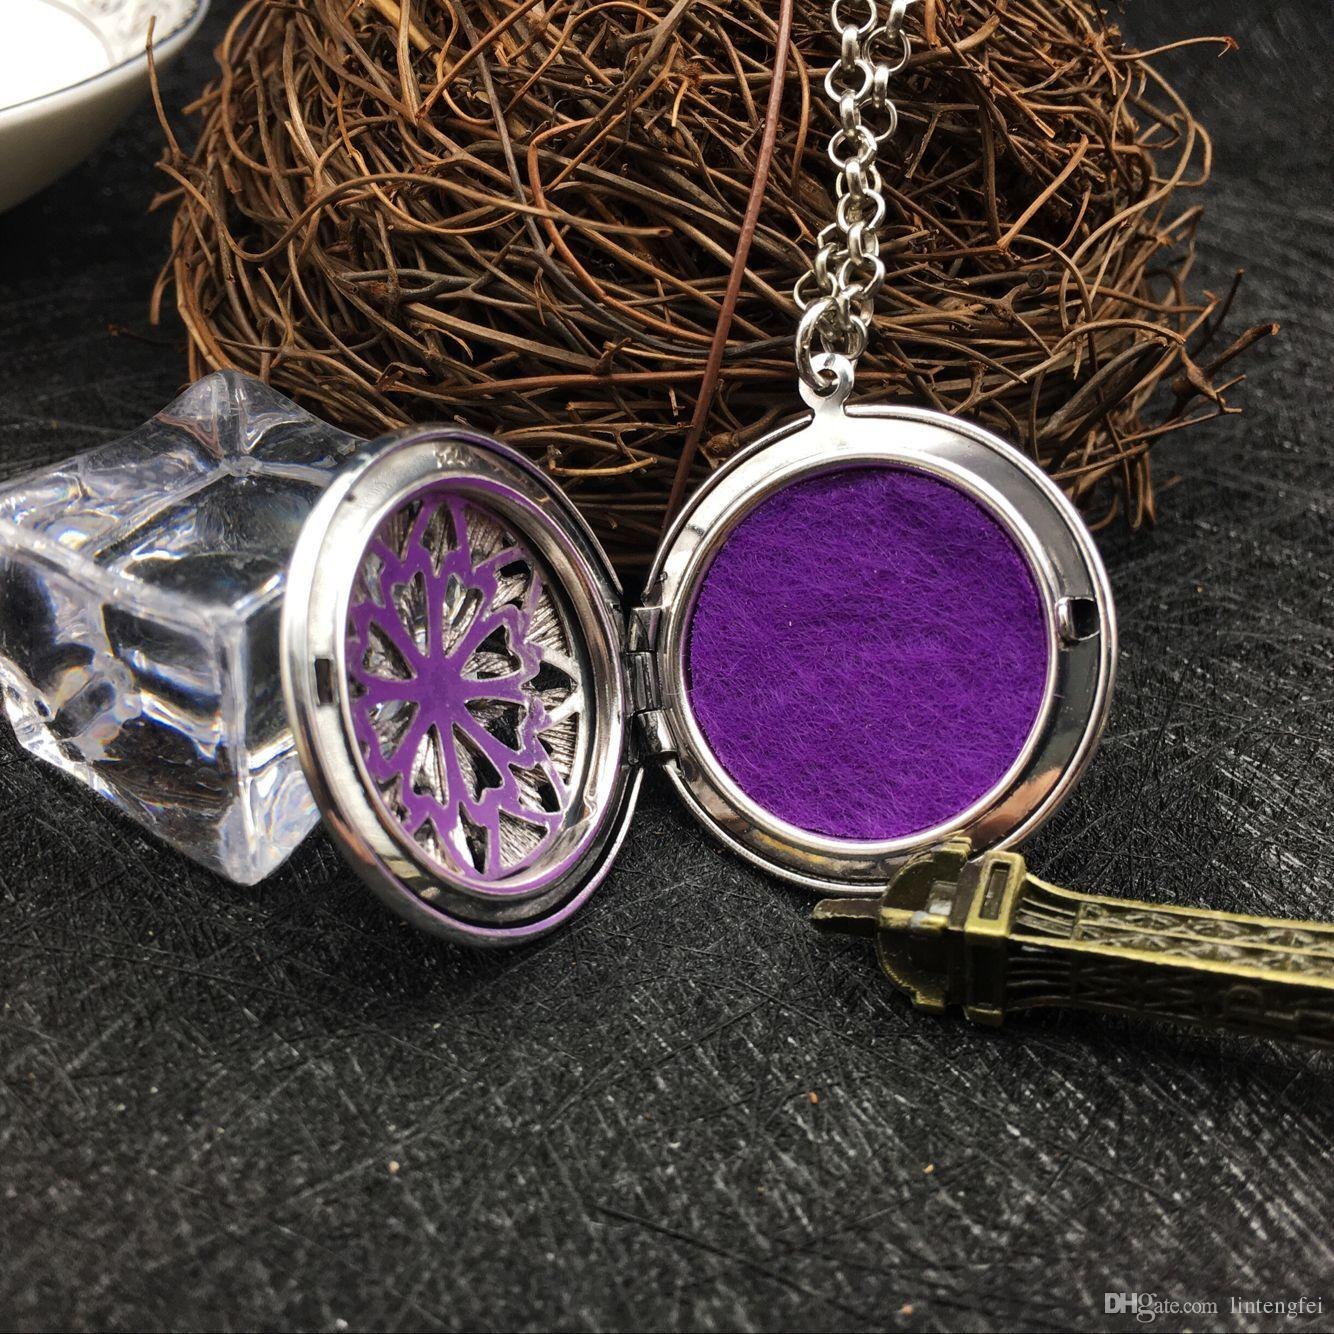 1 package classic style sweater sweater necklace snowflake necklace aromatherapy essential oil necklace Christmas Can open the photo box